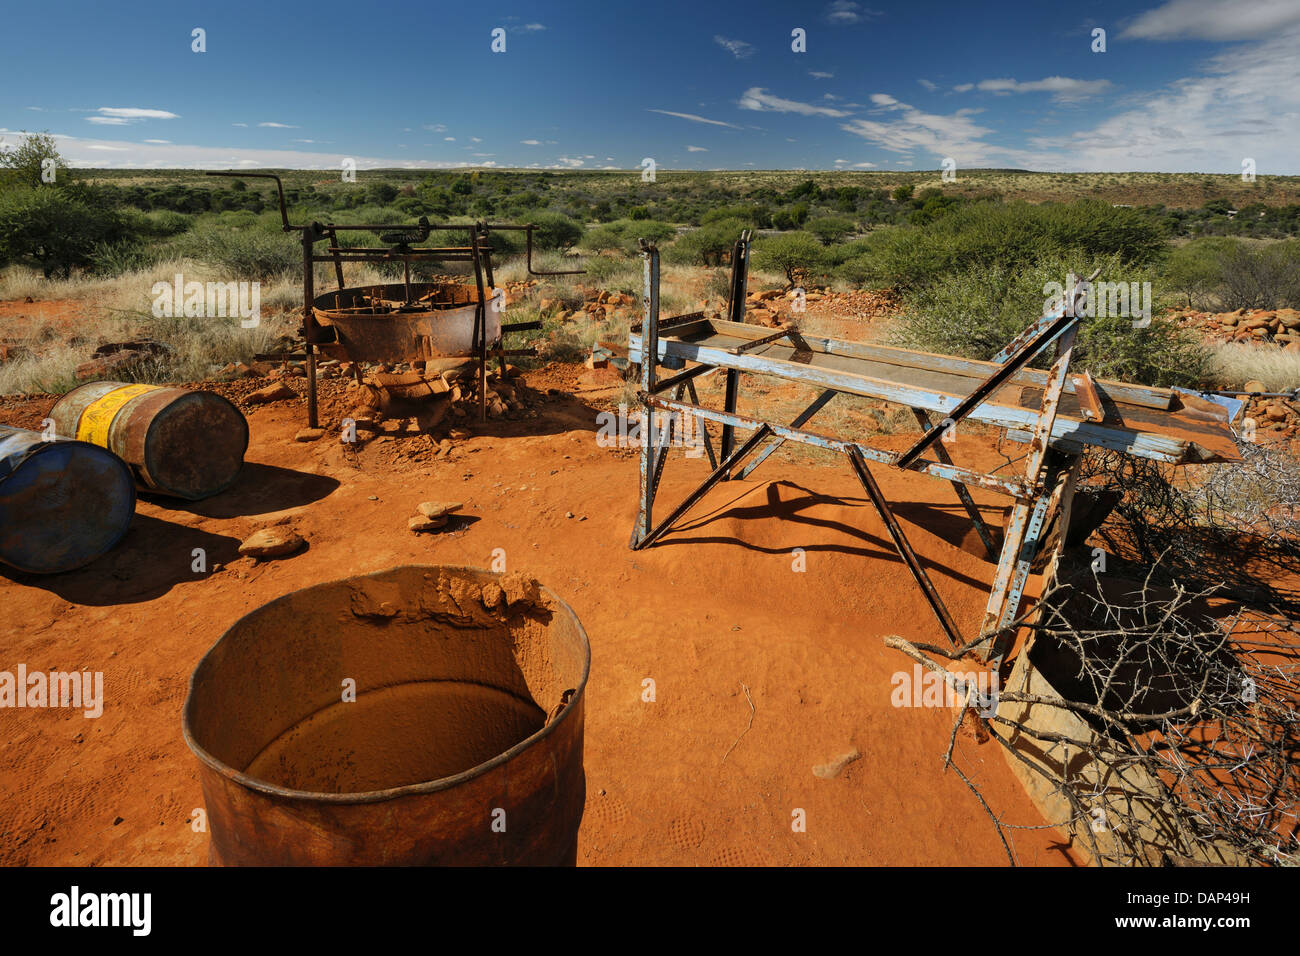 A small diamond mining setup near Barkly West, South Africa - Stock Image